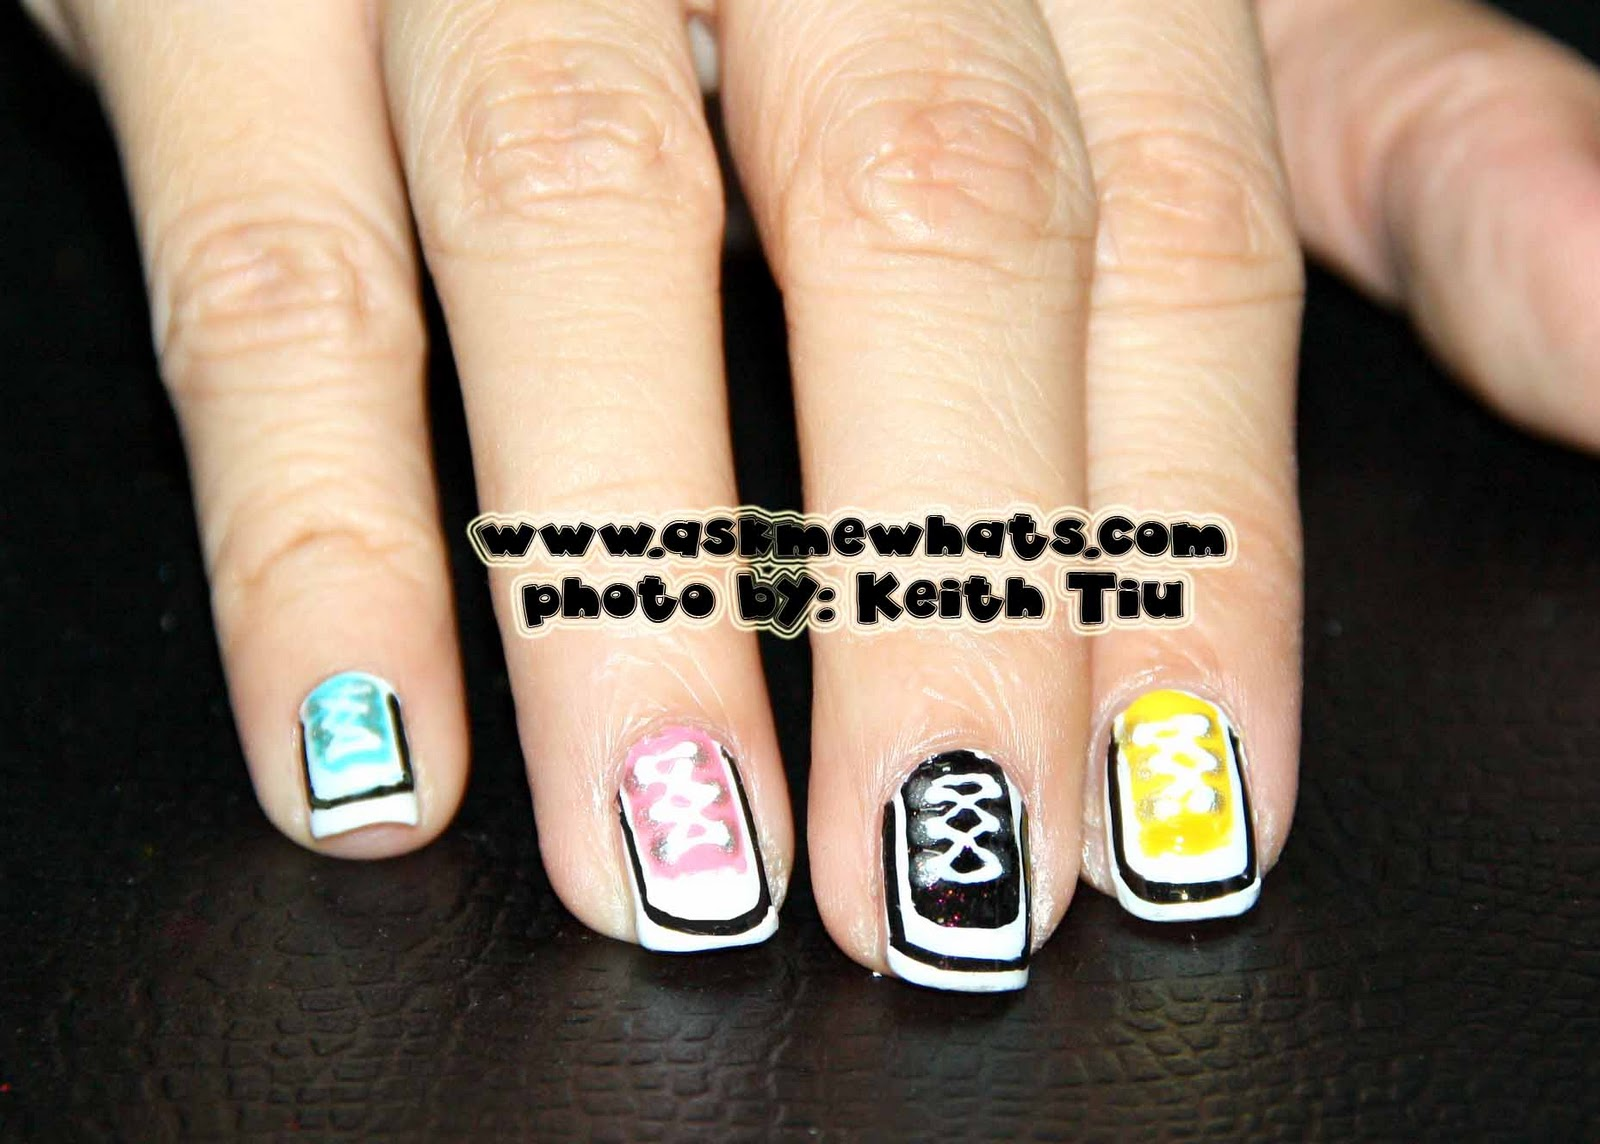 Askmewhats top beauty blogger philippines skincare makeup nail art tutorial shoes on my nails prinsesfo Gallery